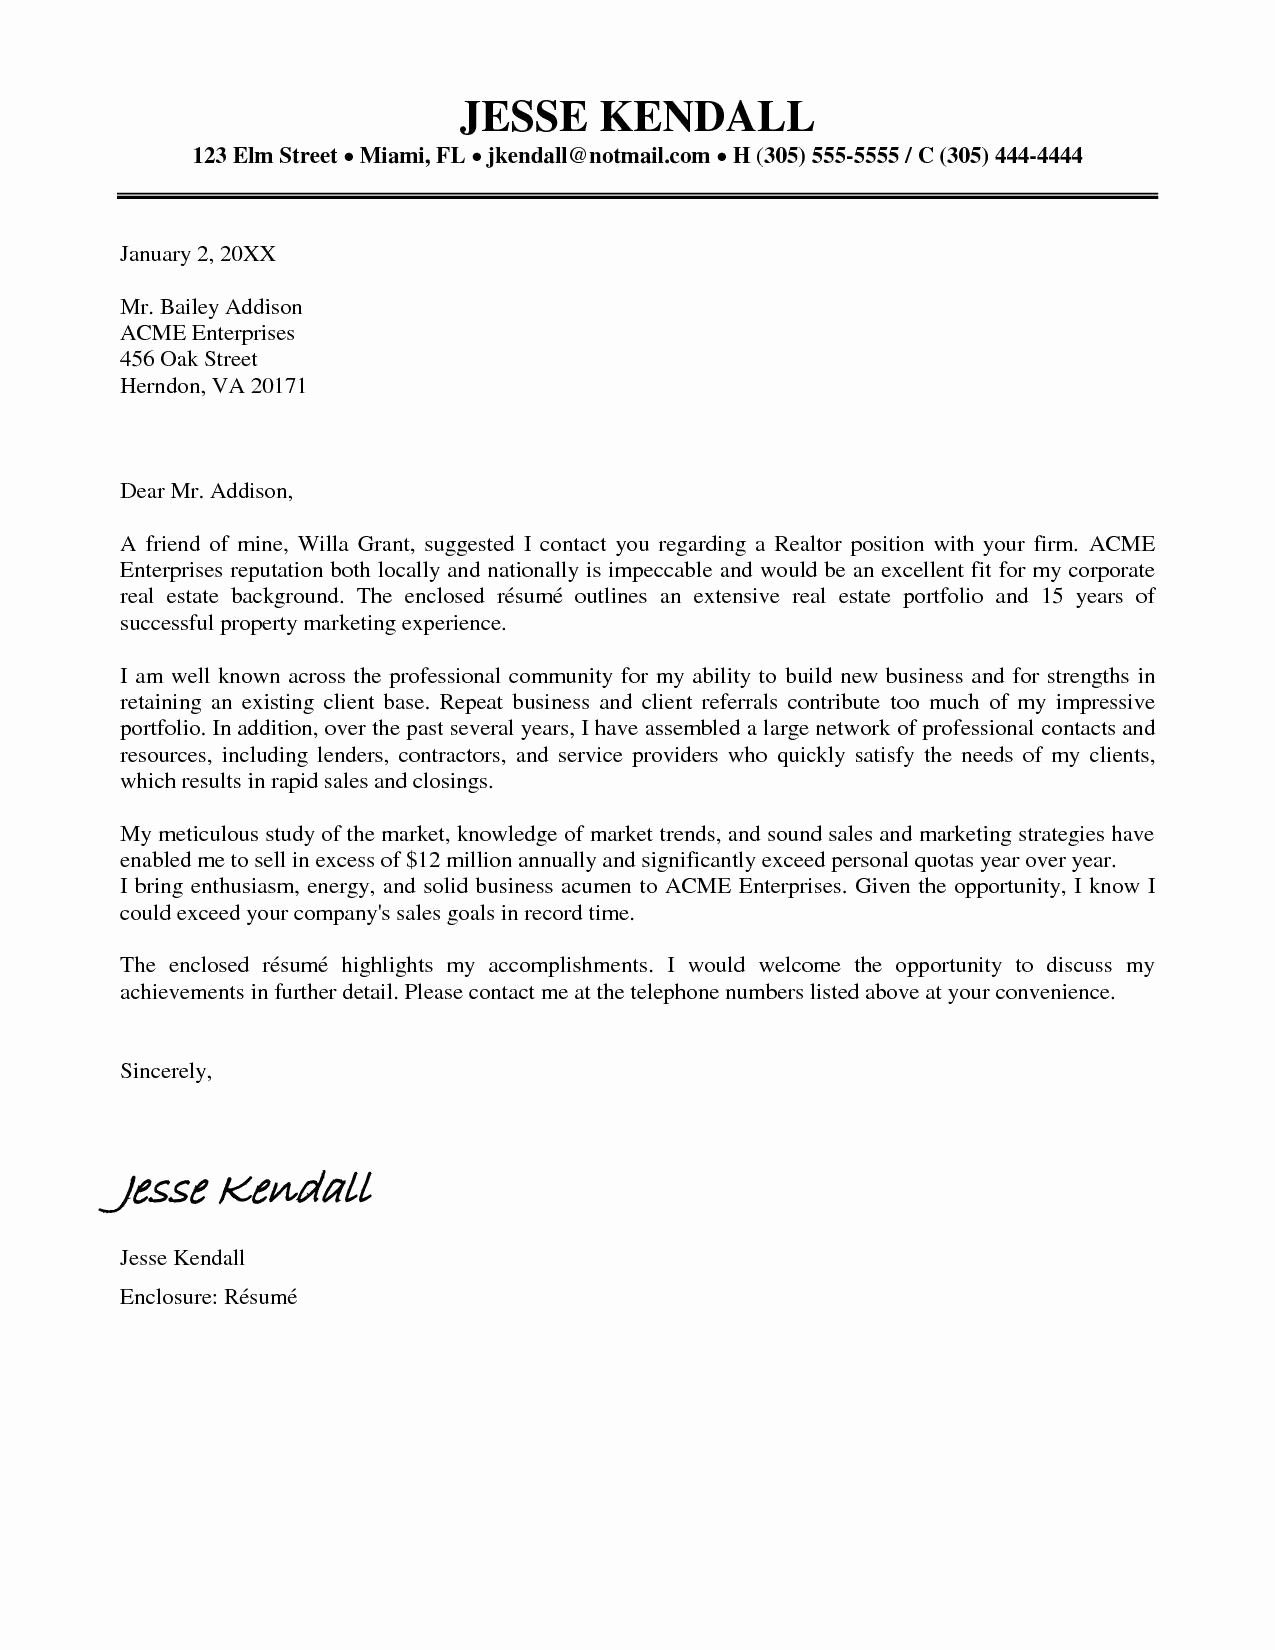 Real Estate Referral Letter Template - Real Estate Resume Sample Lovely Real Estate Resume Sample Best